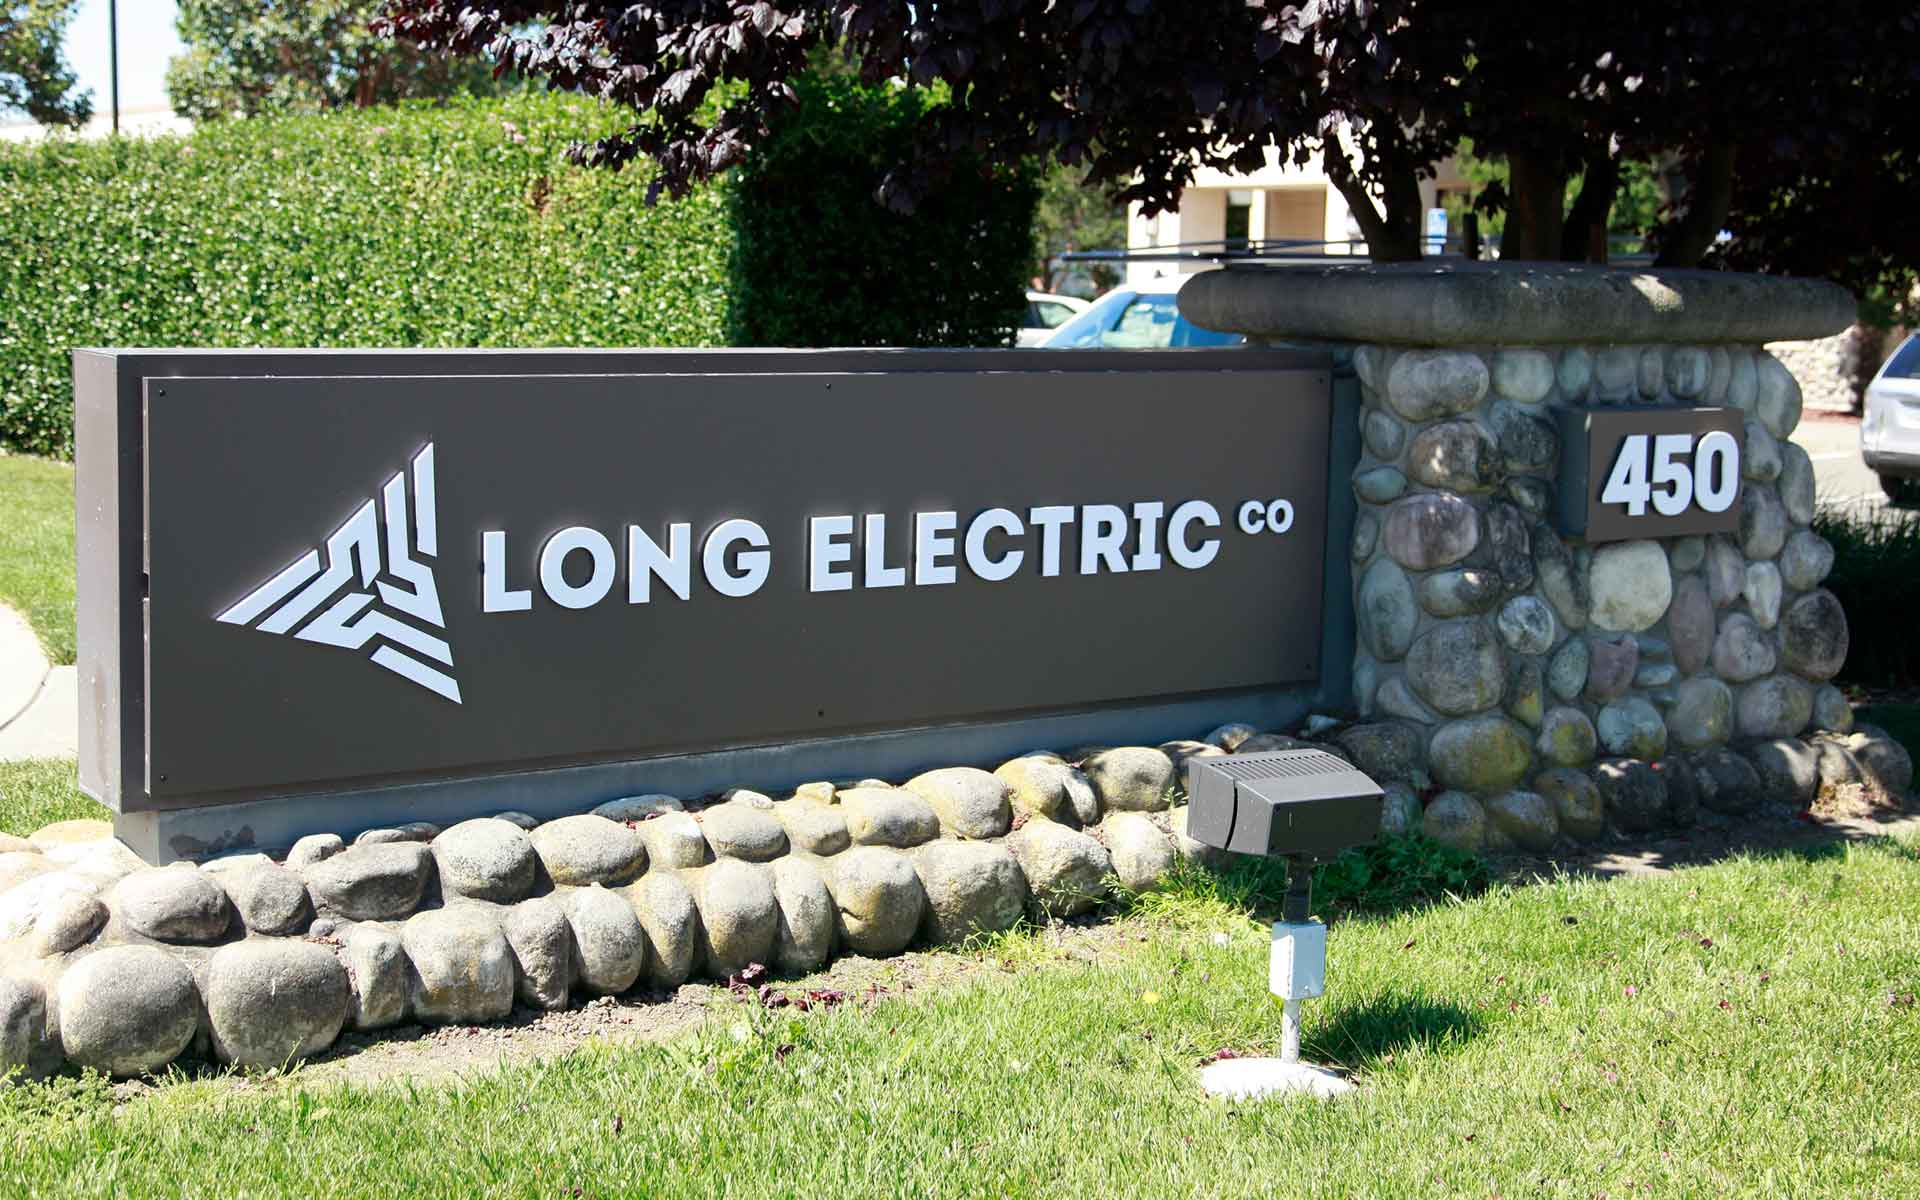 Long Electric sign, view from the street